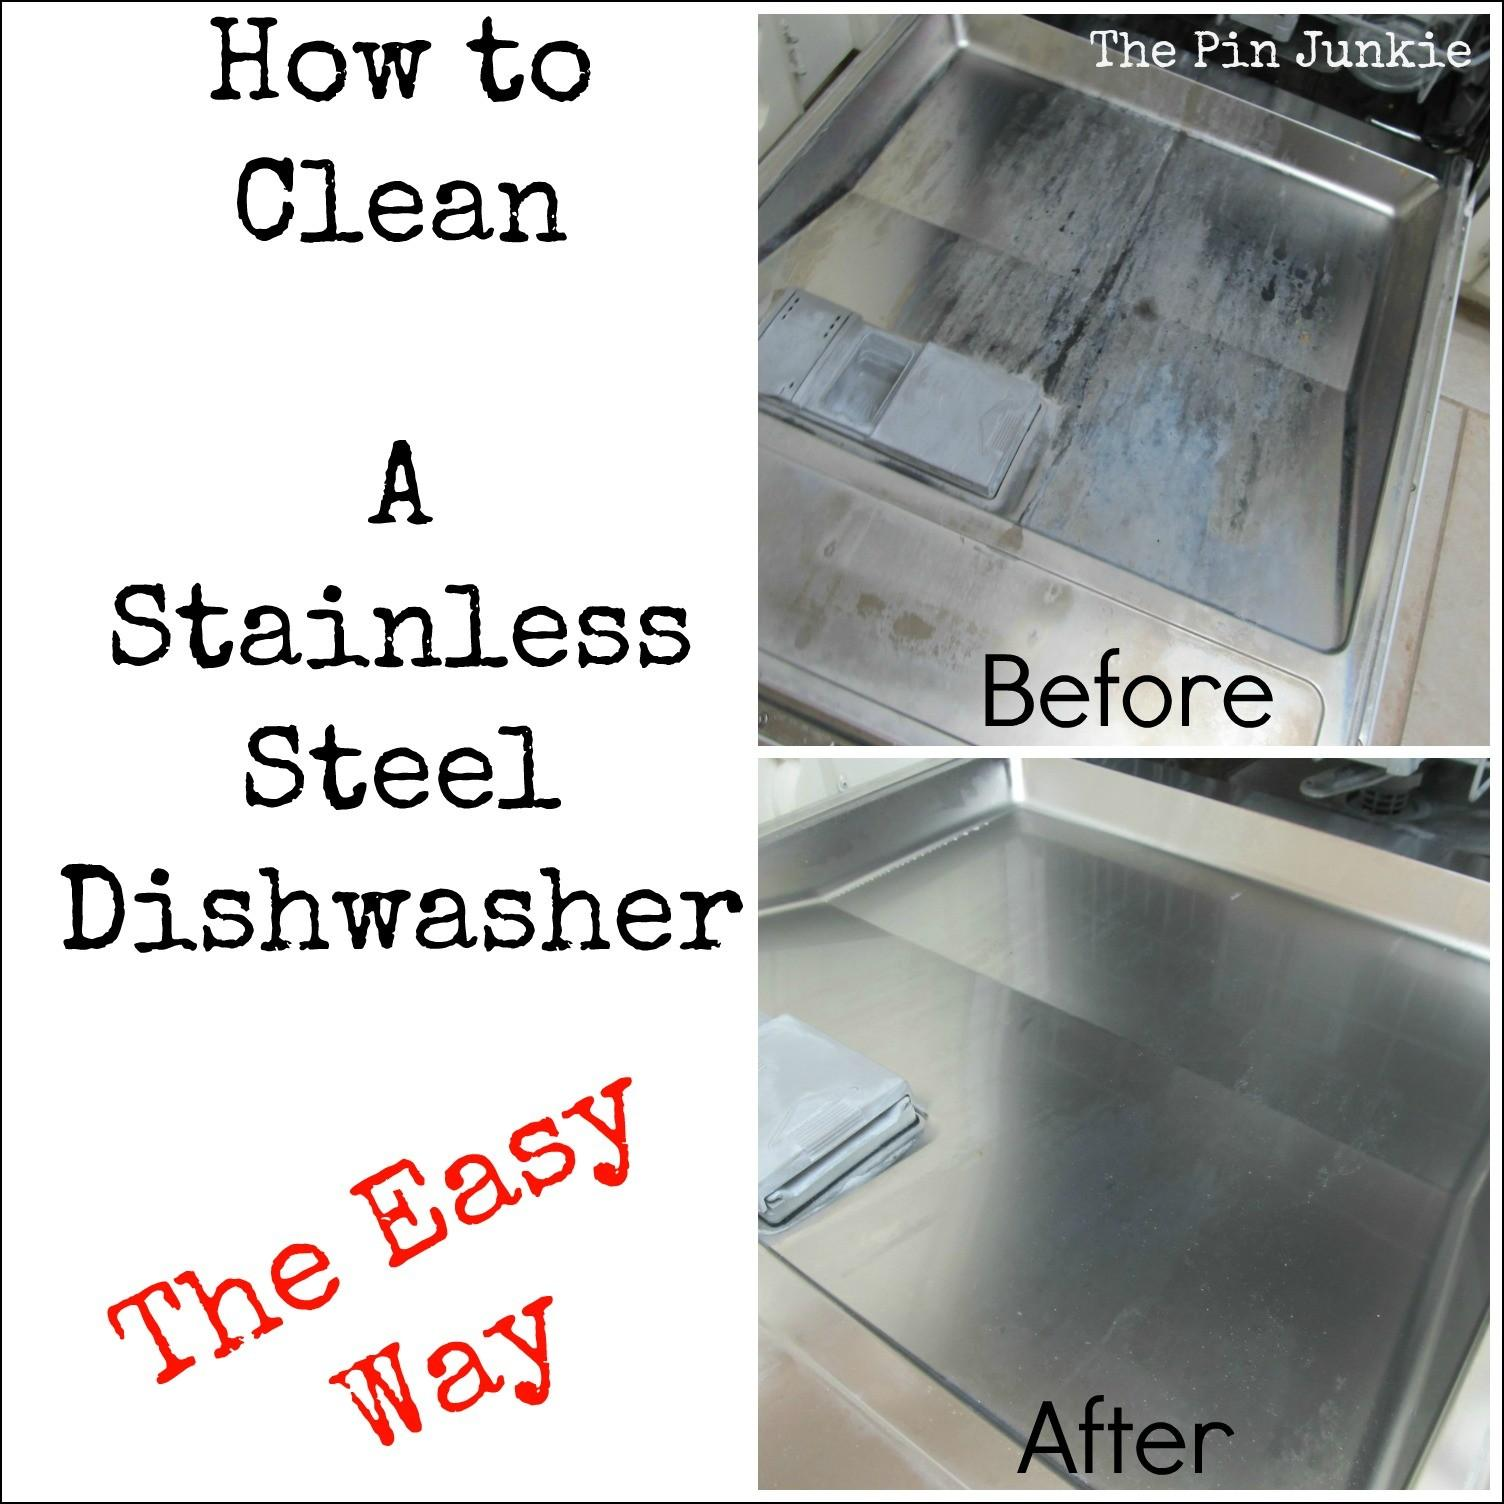 Stainless Steel Dishwasher Clean